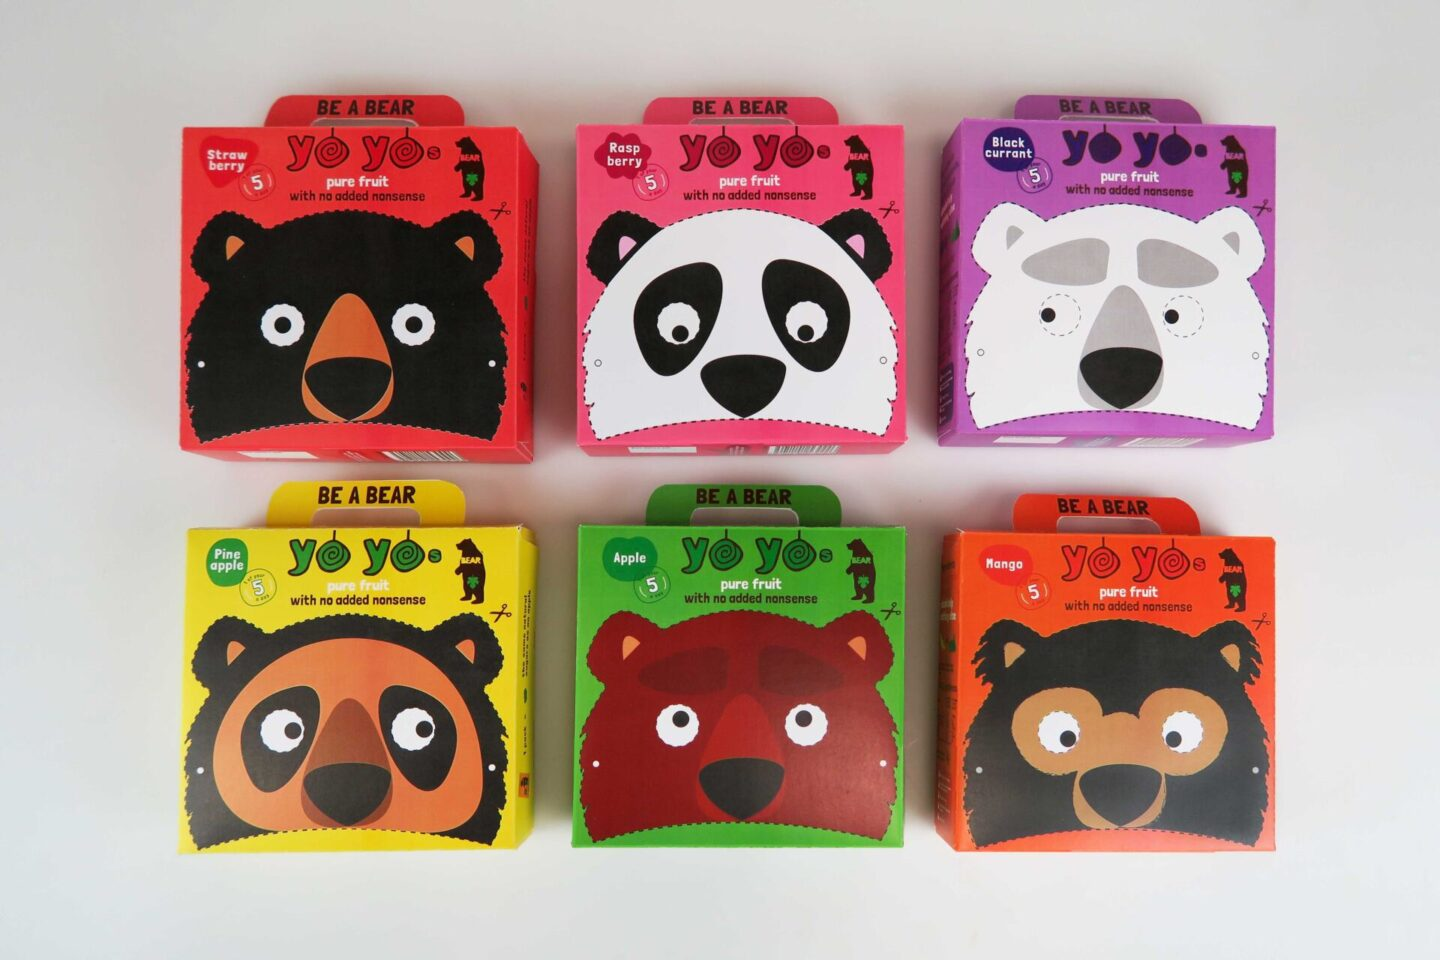 bear snack packaging design by melissa carne graphic designer in cornwall